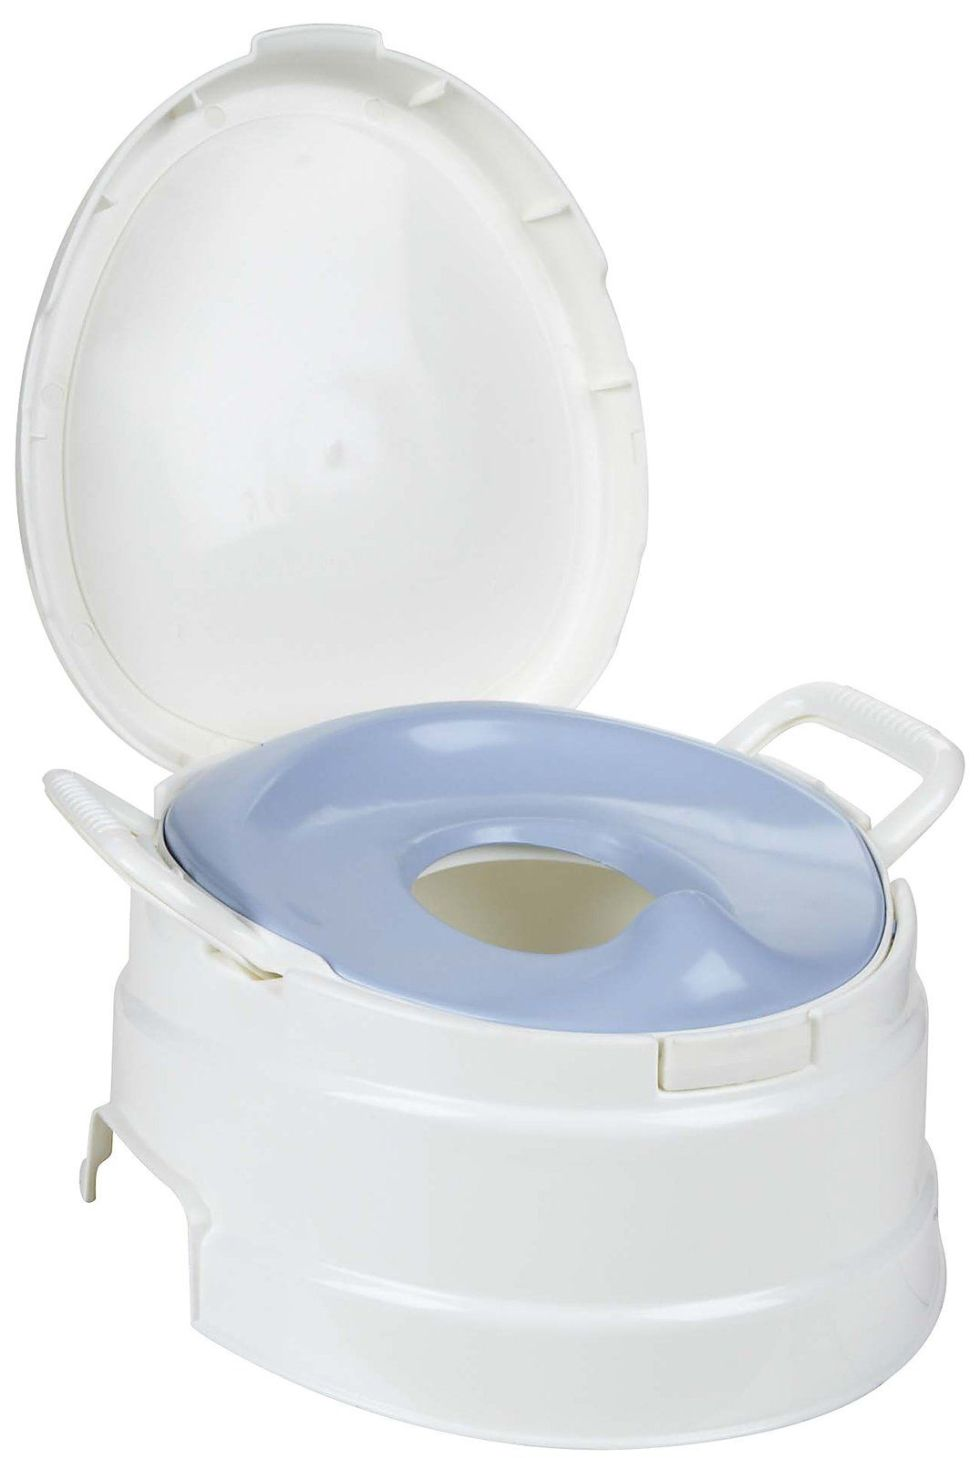 14 Best Potty Chairs for Toddlers in 2017 - Potty Training Chairs and Seats  sc 1 st  BestProducts.com & 14 Best Potty Chairs for Toddlers in 2017 - Potty Training Chairs ... islam-shia.org